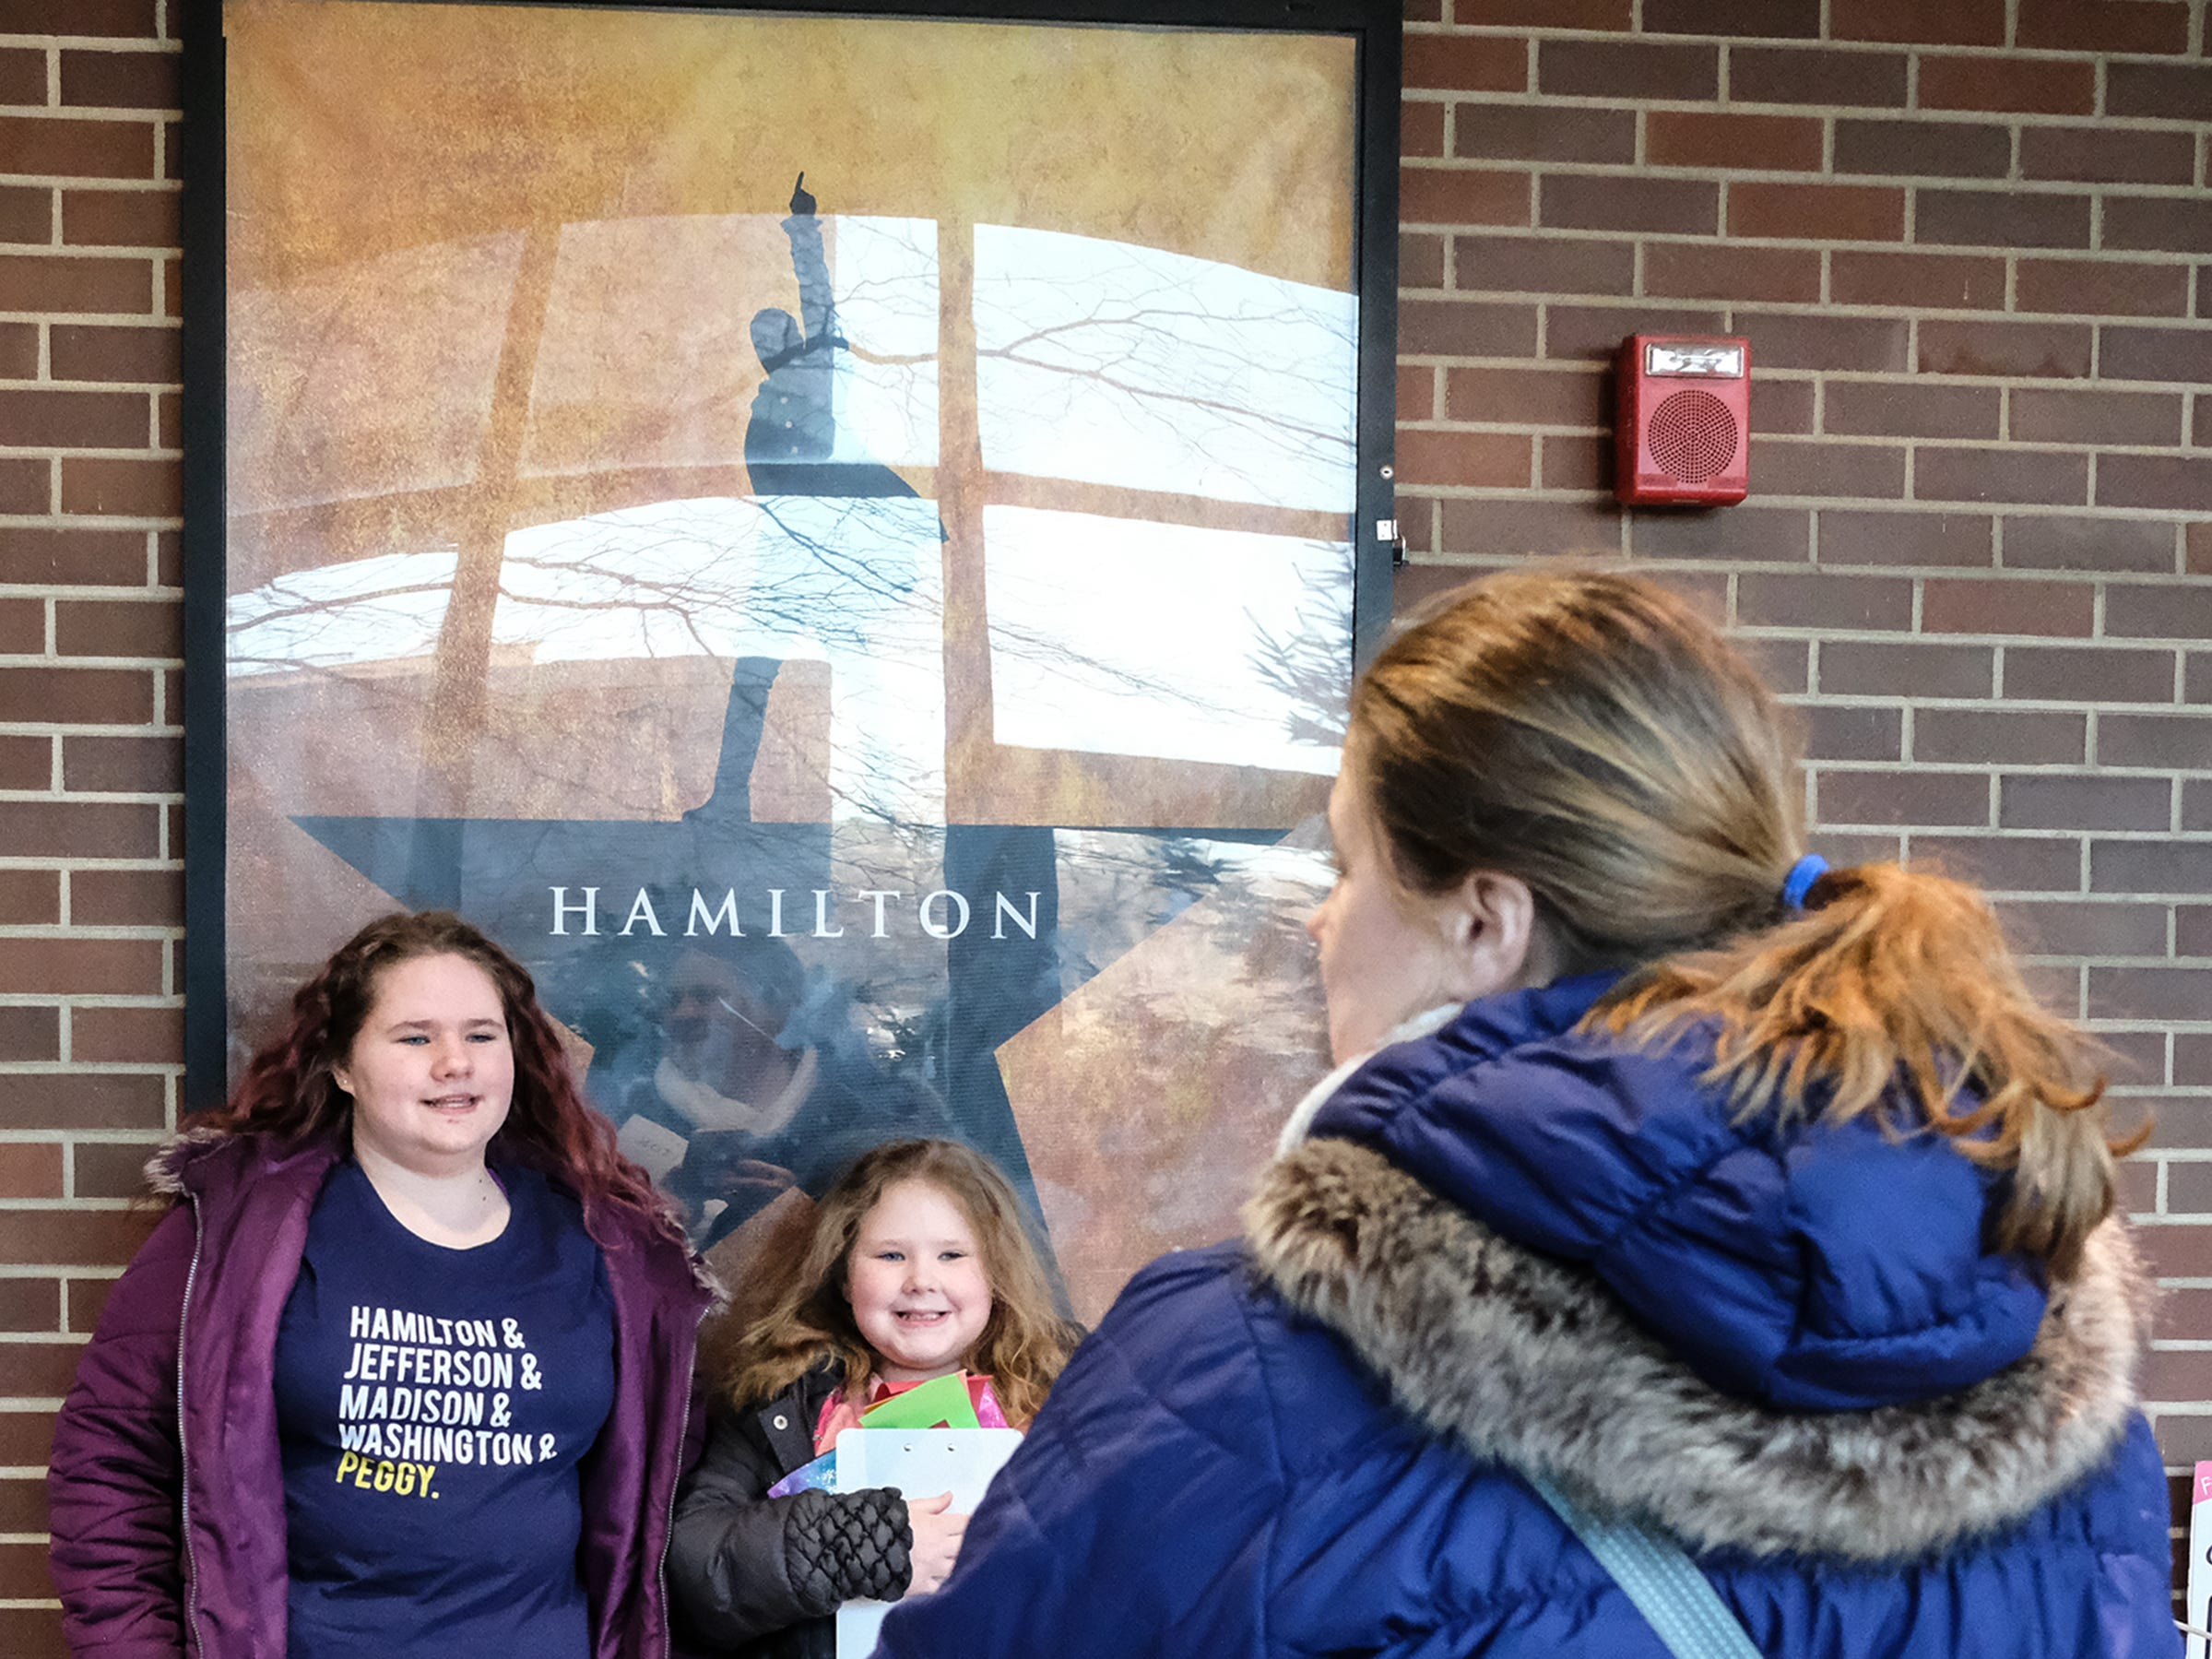 """Coming from St. Clair Shores, the McCoy family, Riley, 13, Cecilia, 7, and their mom Nicole pose for photos at the Wharton Center Saturday, March 23, 2019, as they continue their quest for tickets to """"Hamilton."""""""